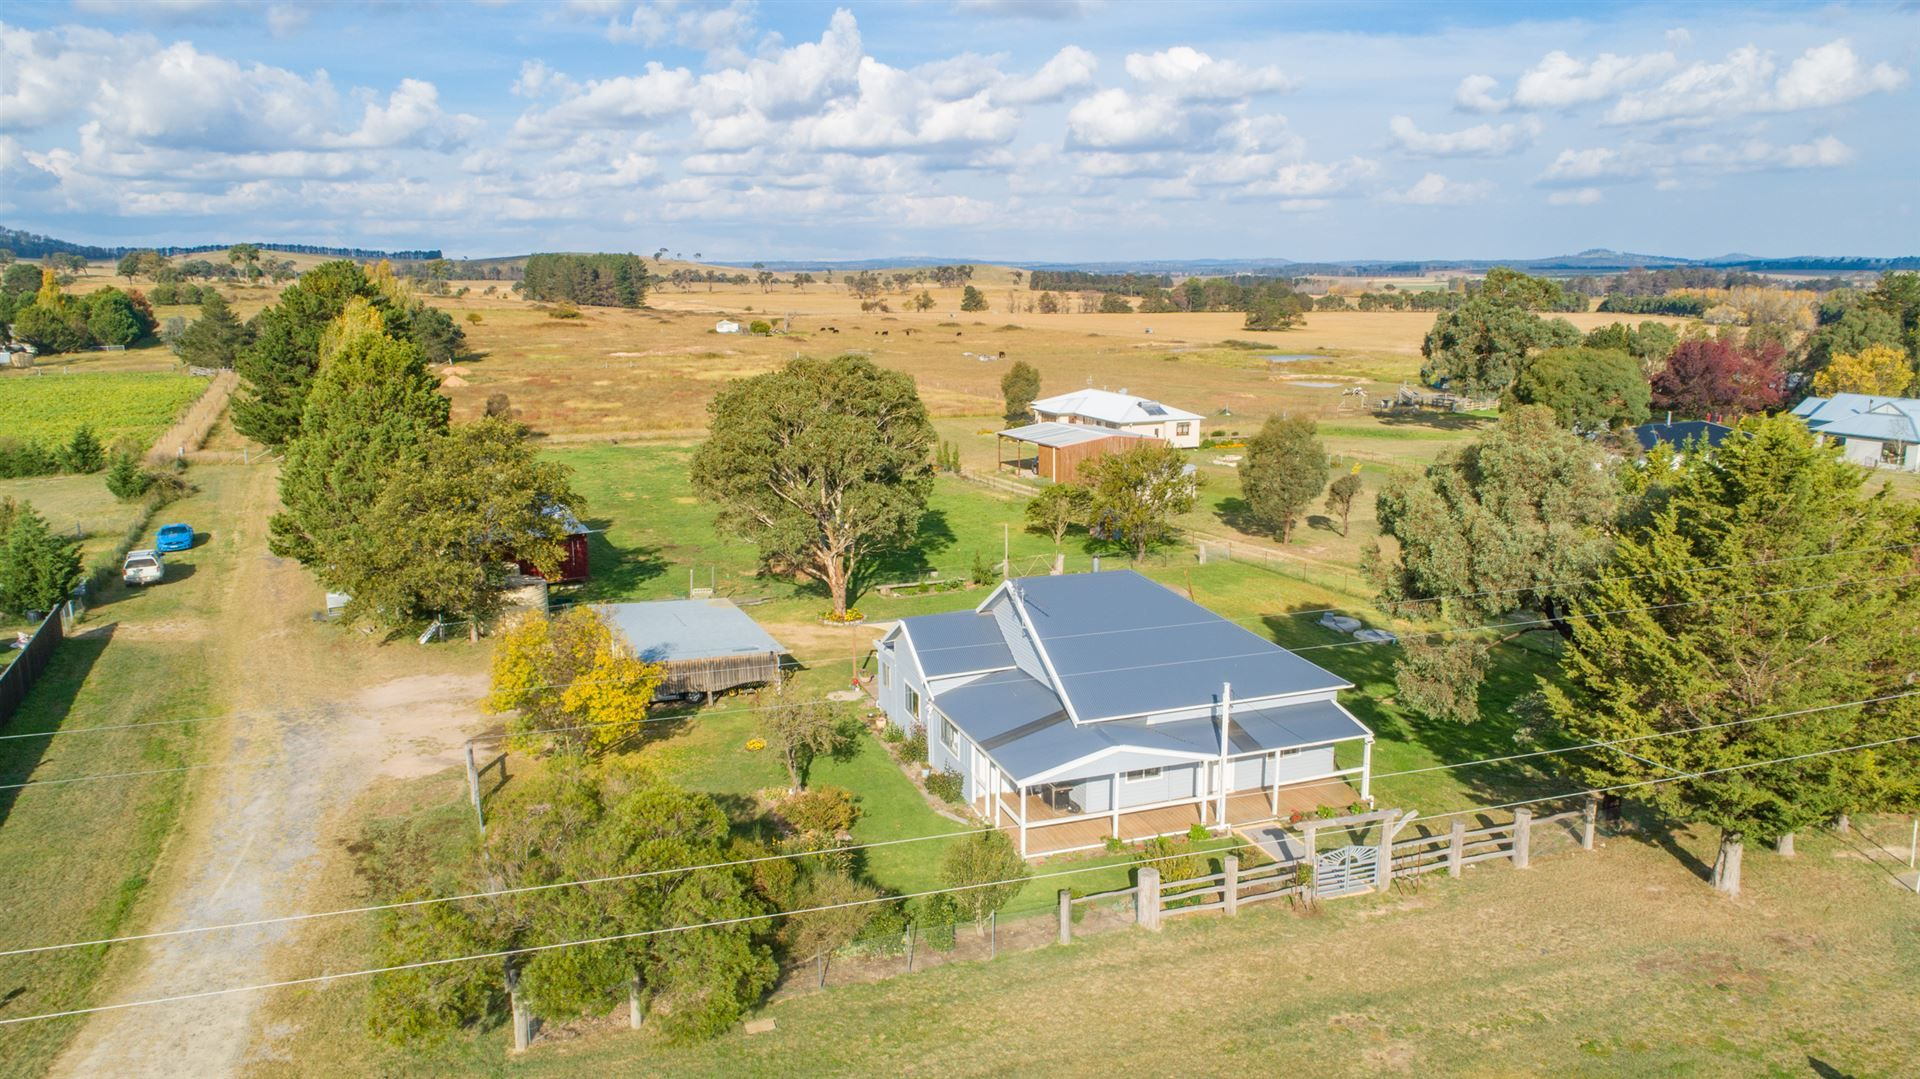 25 Eastern Avenue - Kentucky NSW 2354, Uralla NSW 2358, Image 2